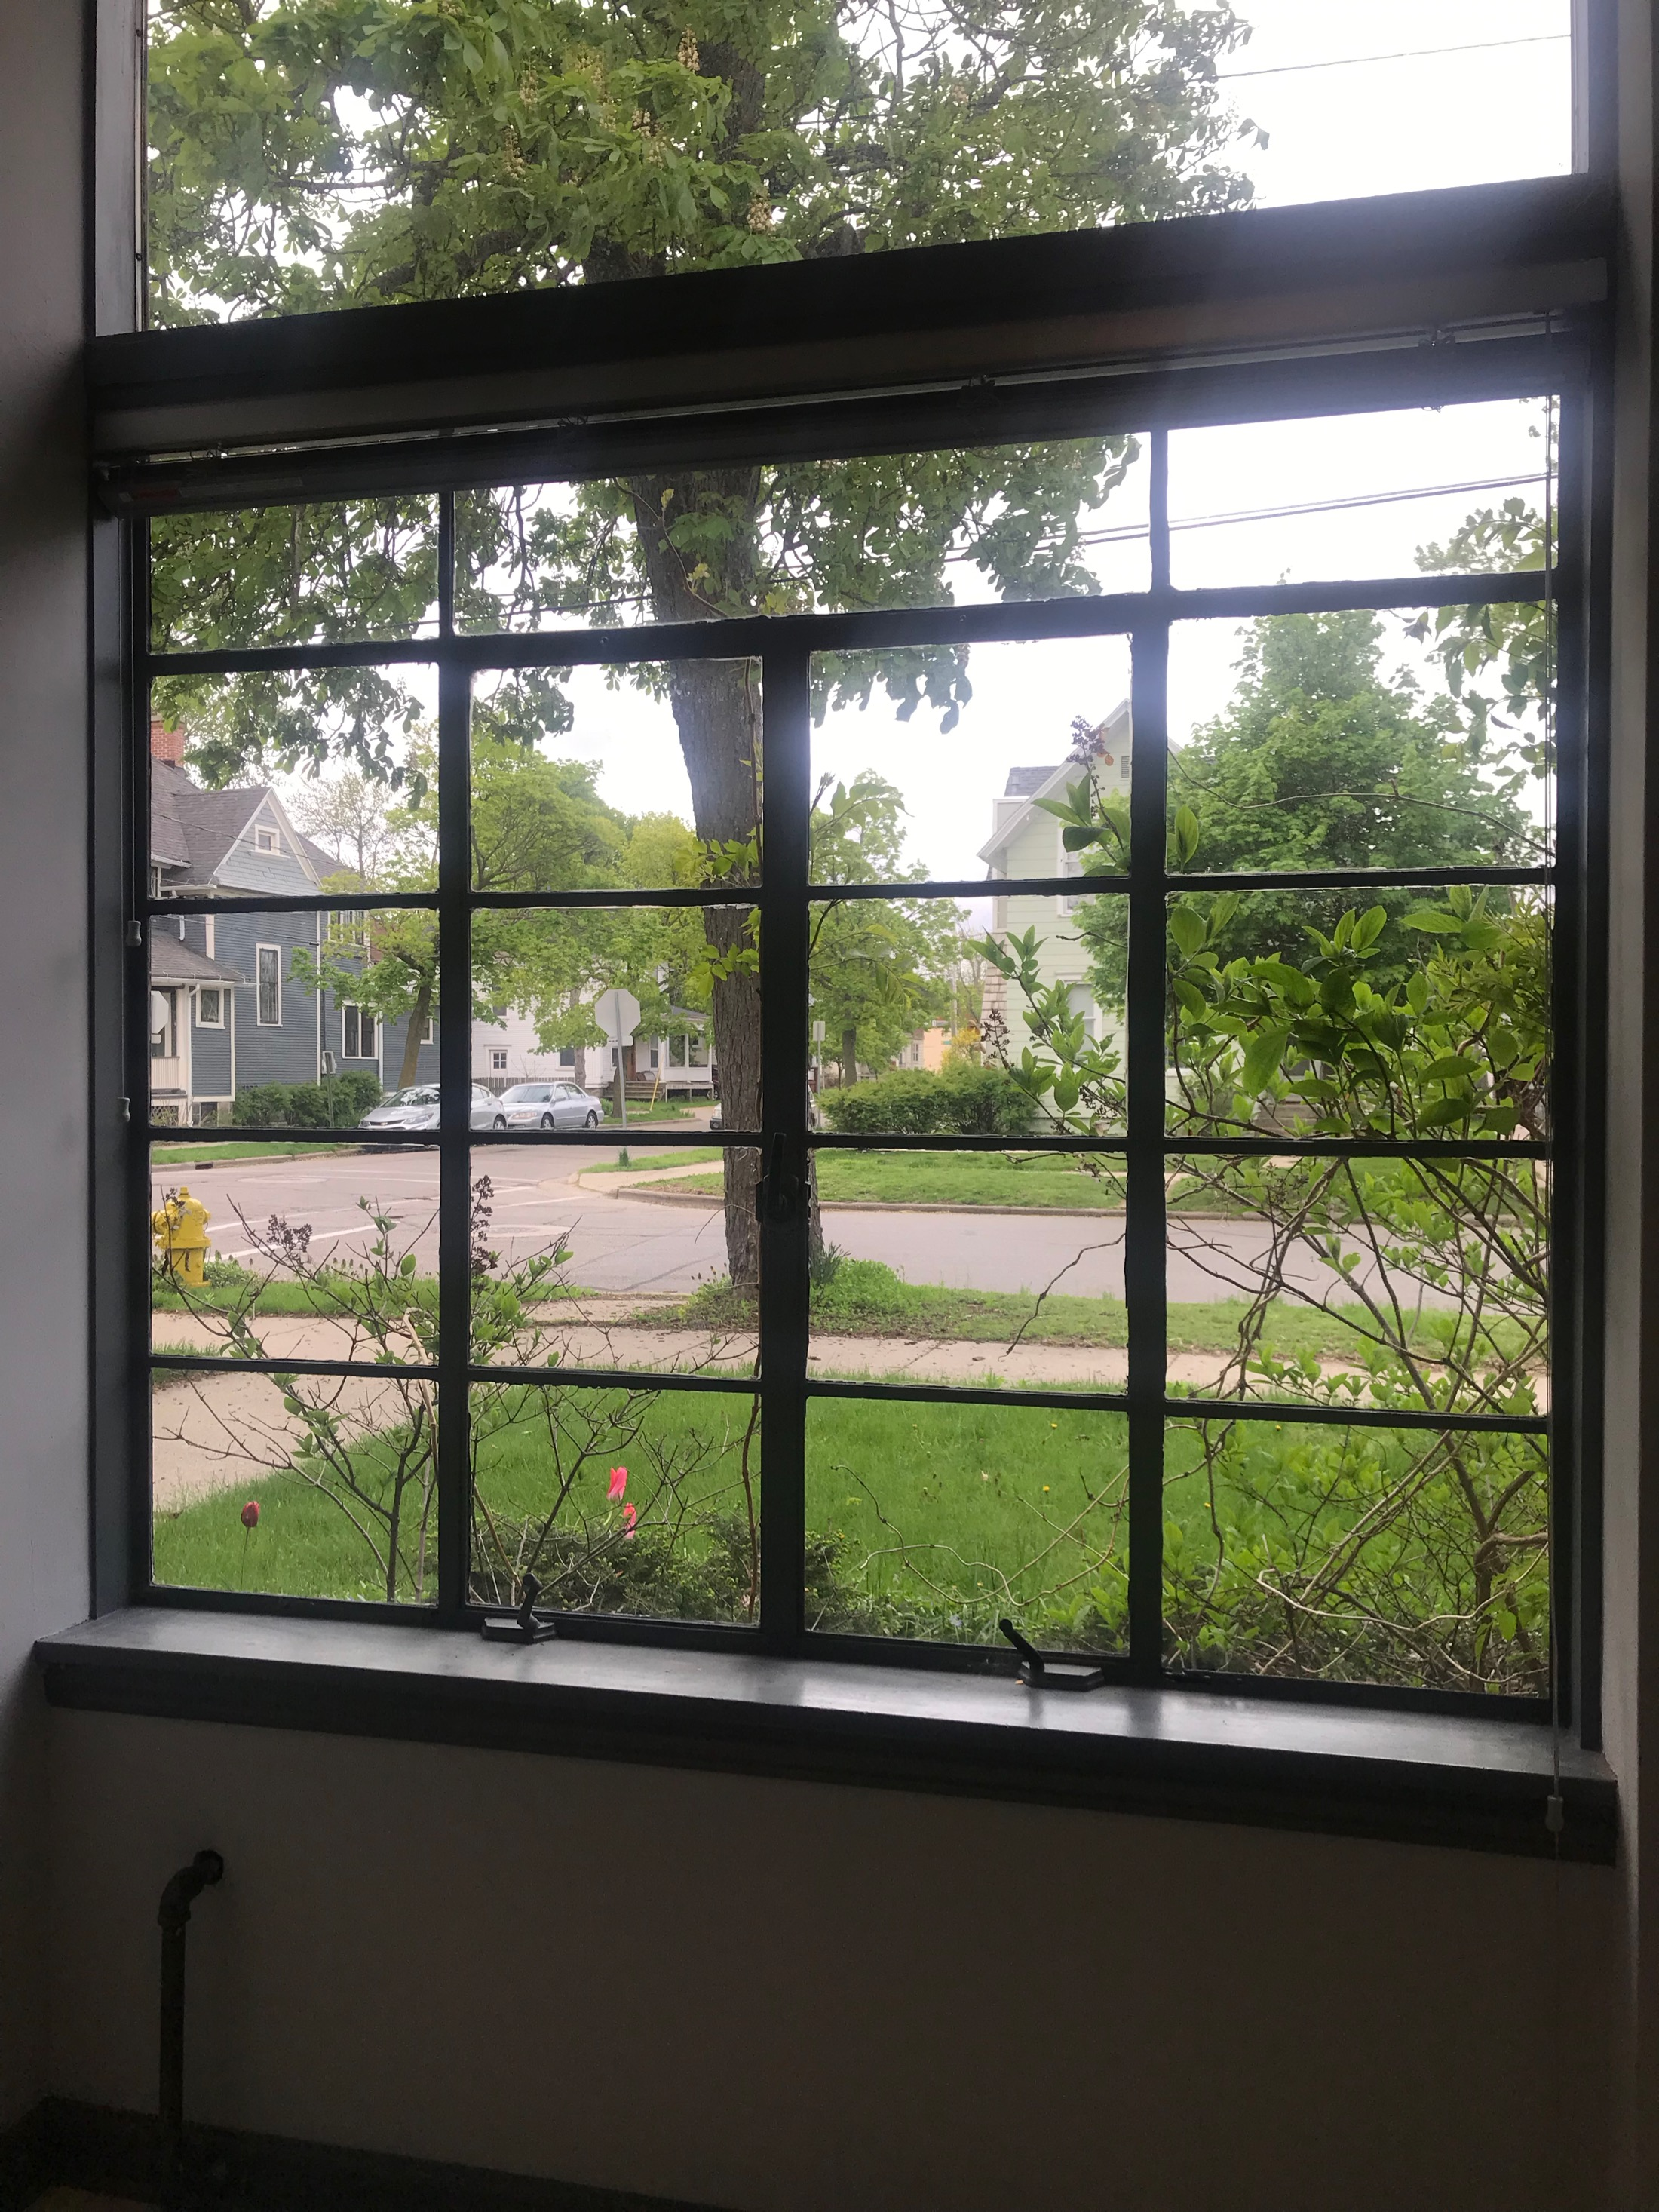 Typical moderne windows with steel frames